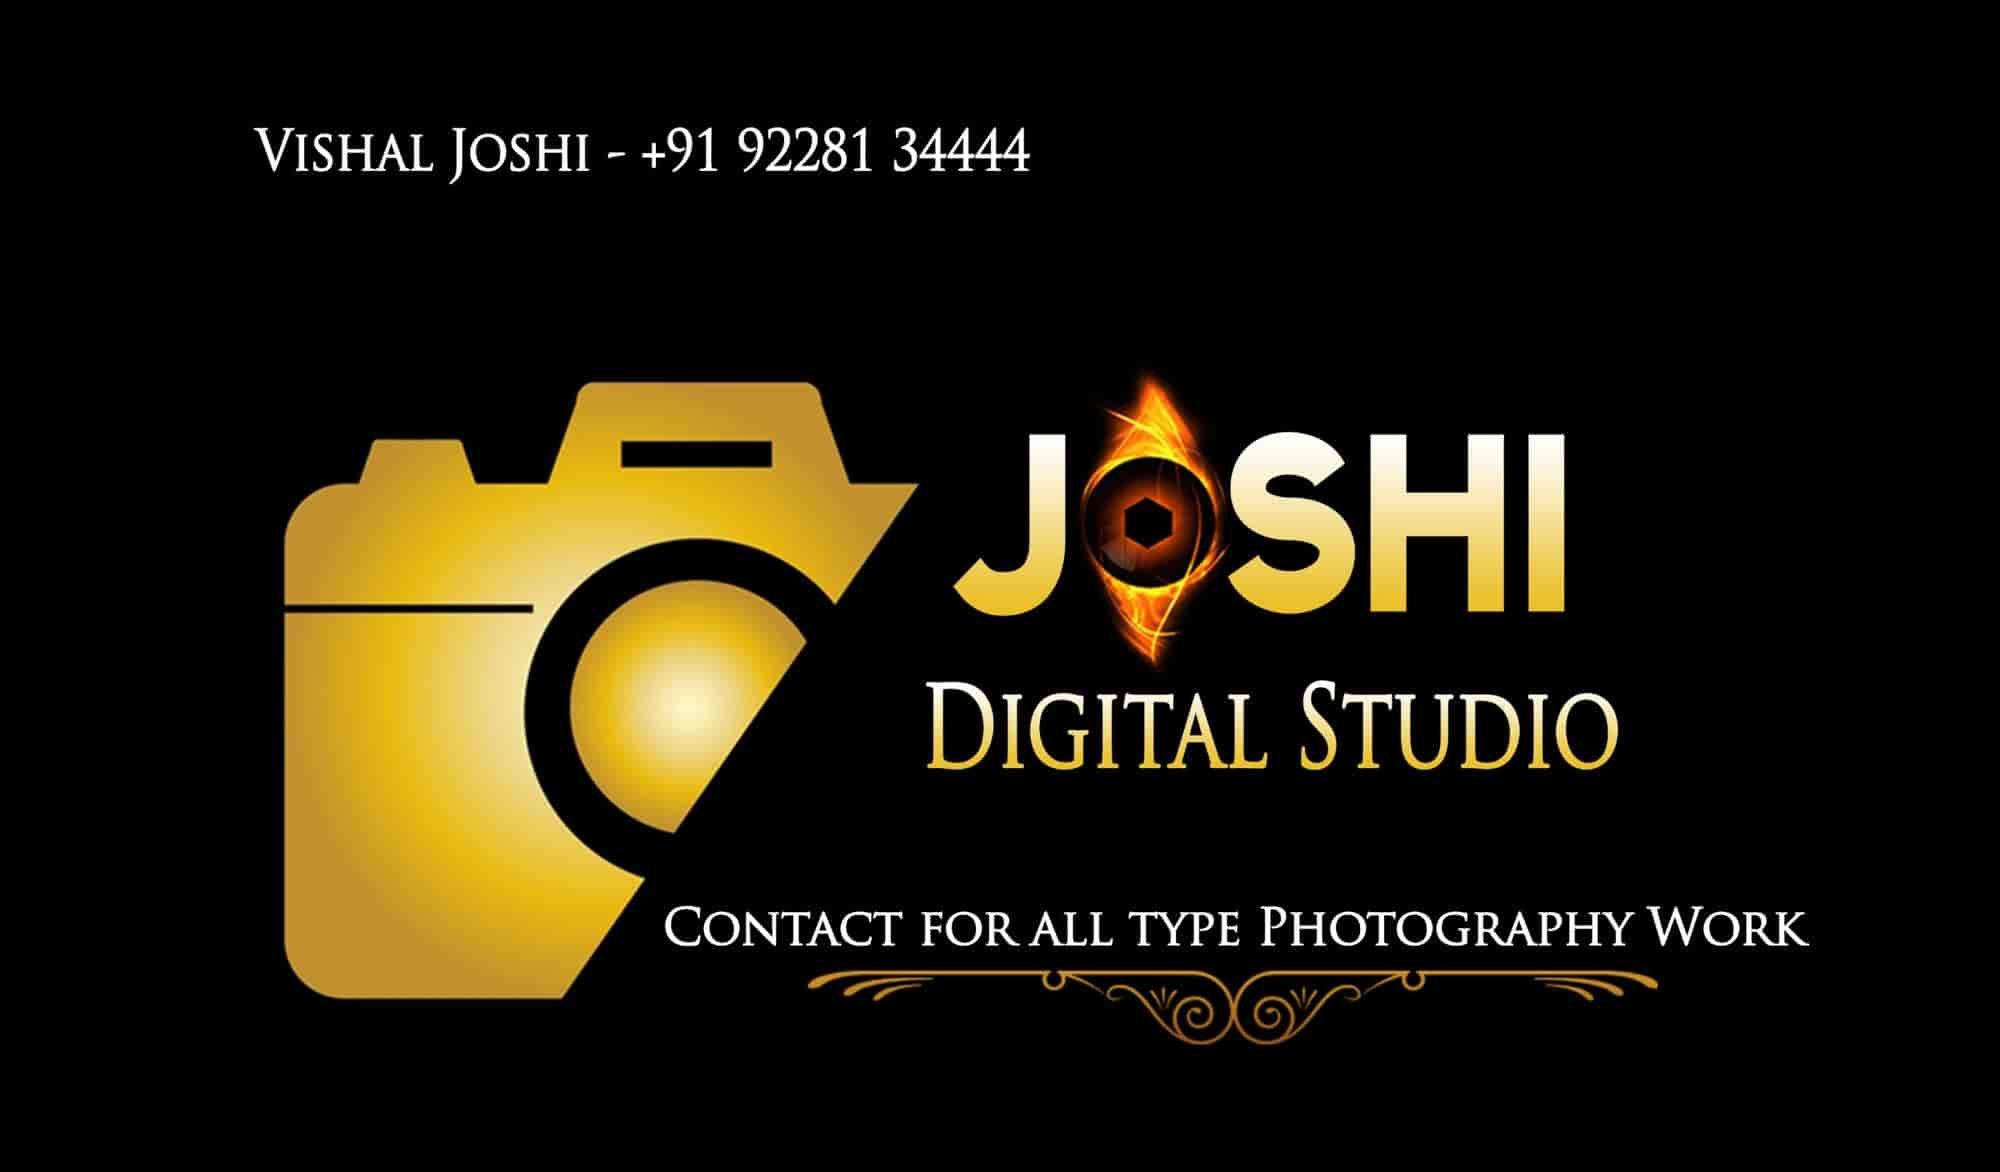 Business card studio photography images card design and card template business card studio photography choice image card design and card business card studio photography choice image reheart Choice Image